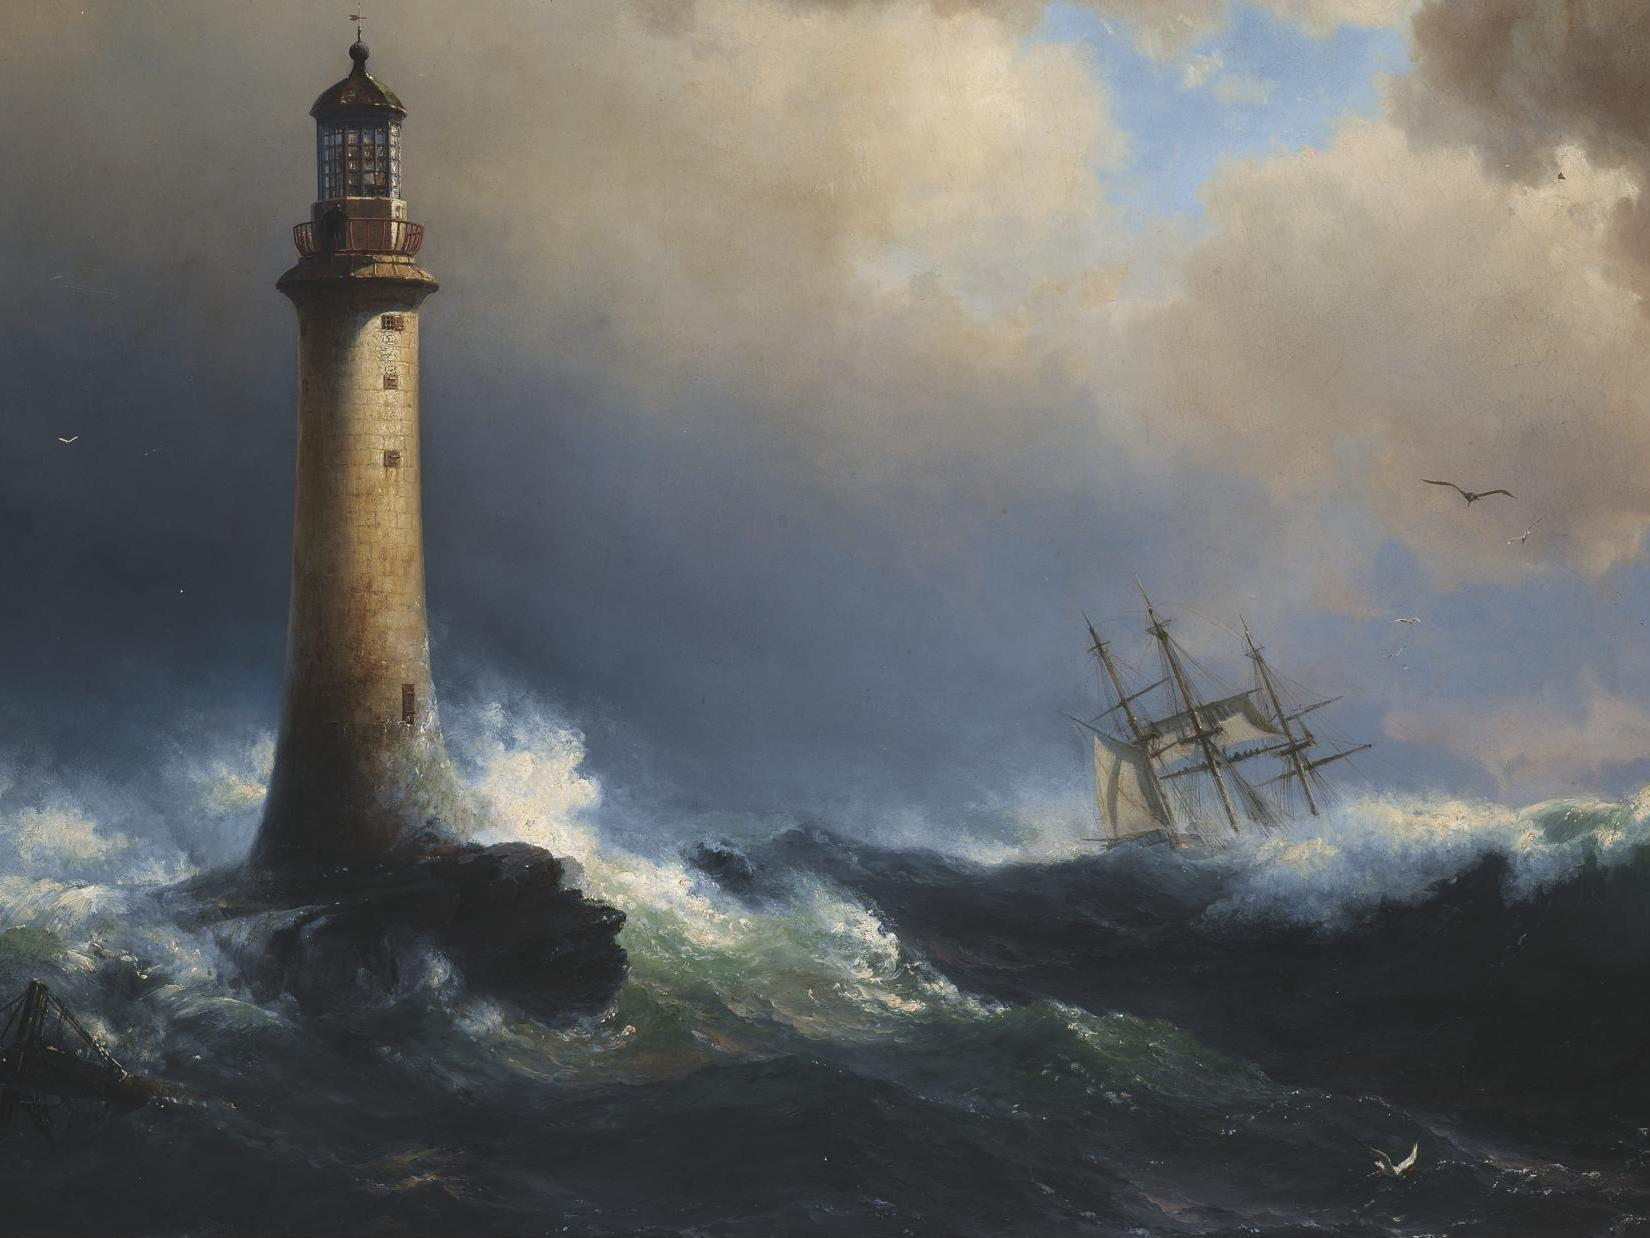 Eddystone Lighthouse: The remarkable story of the UK's first lighthouse